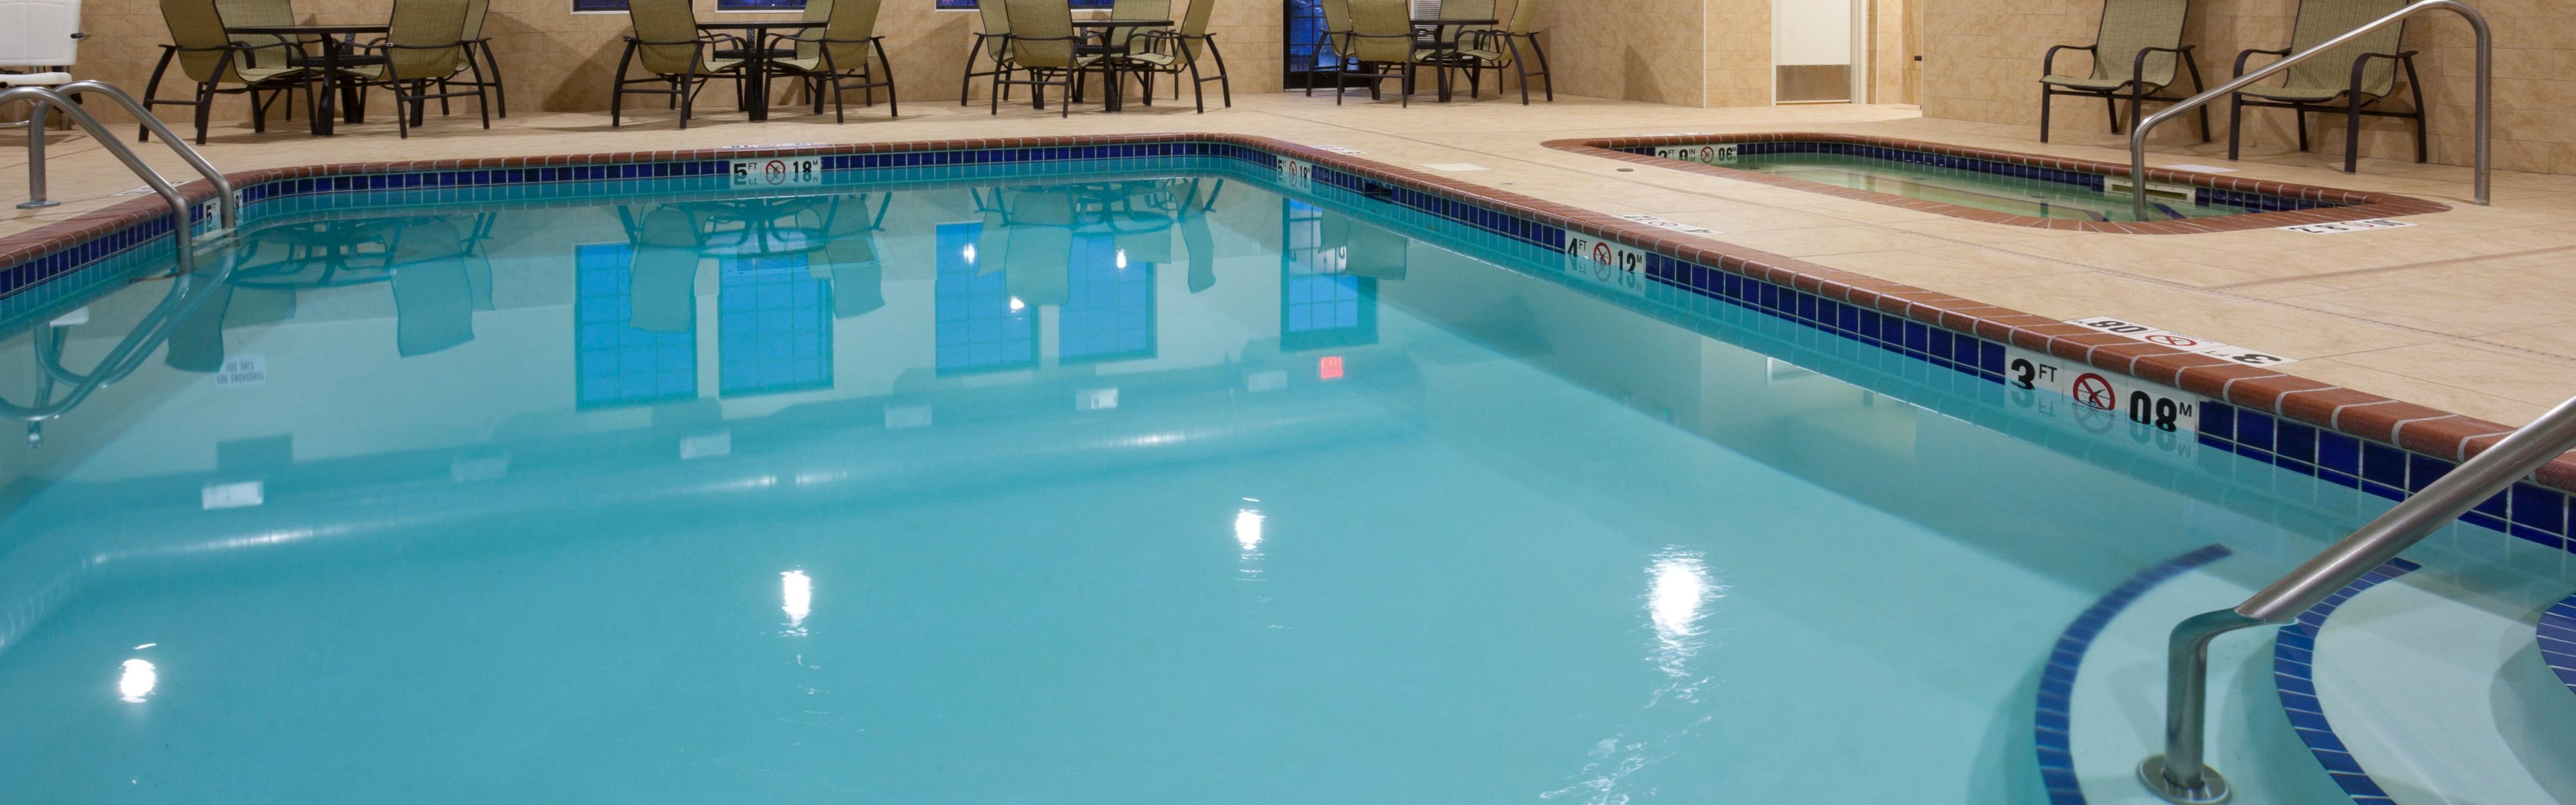 Holiday Inn Express & Suites Willmar image 2